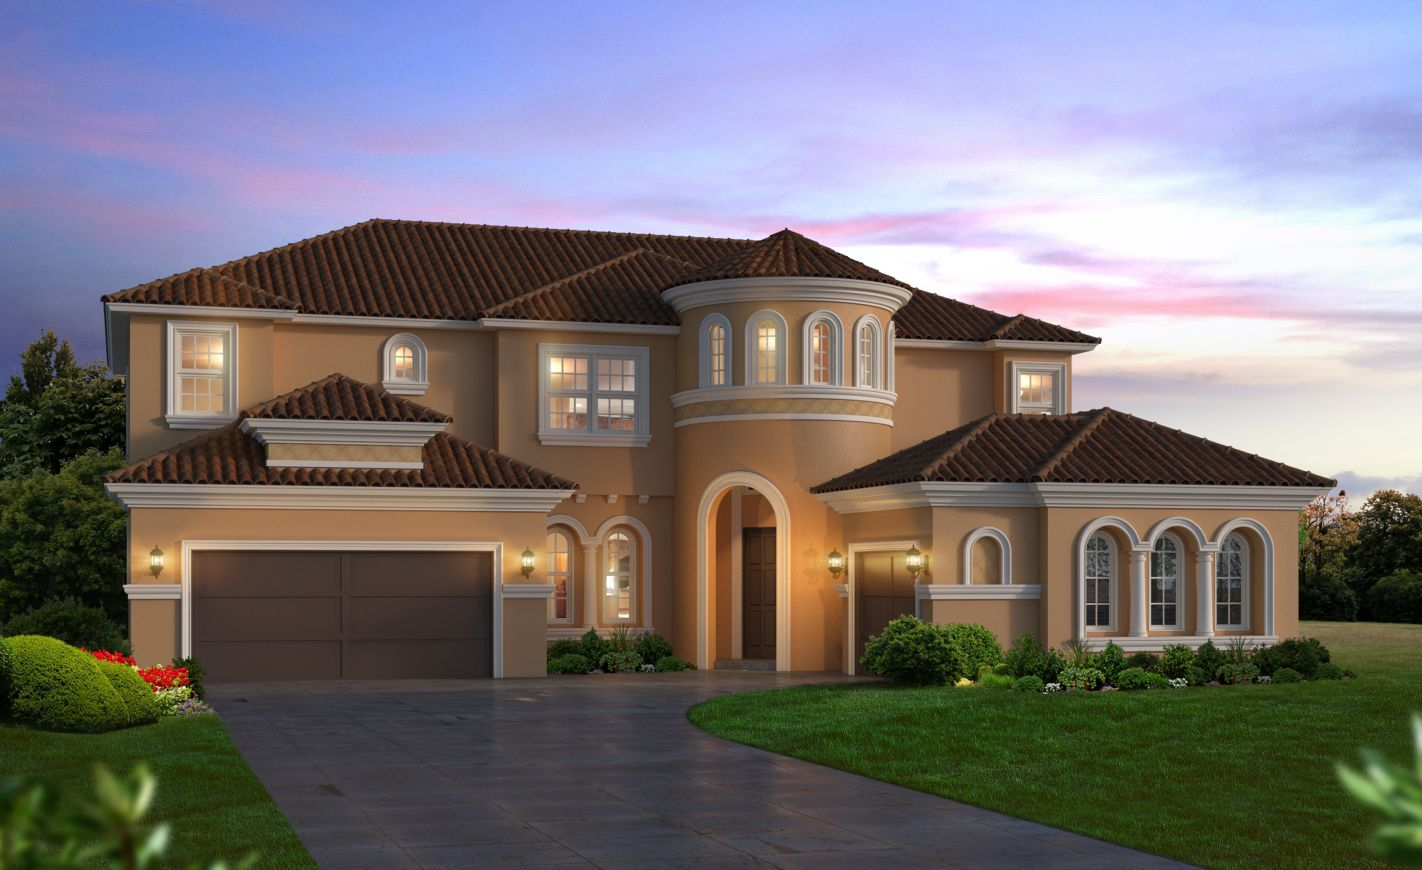 Mediterranean style homes tampa fl home design and style for House plans for florida homes